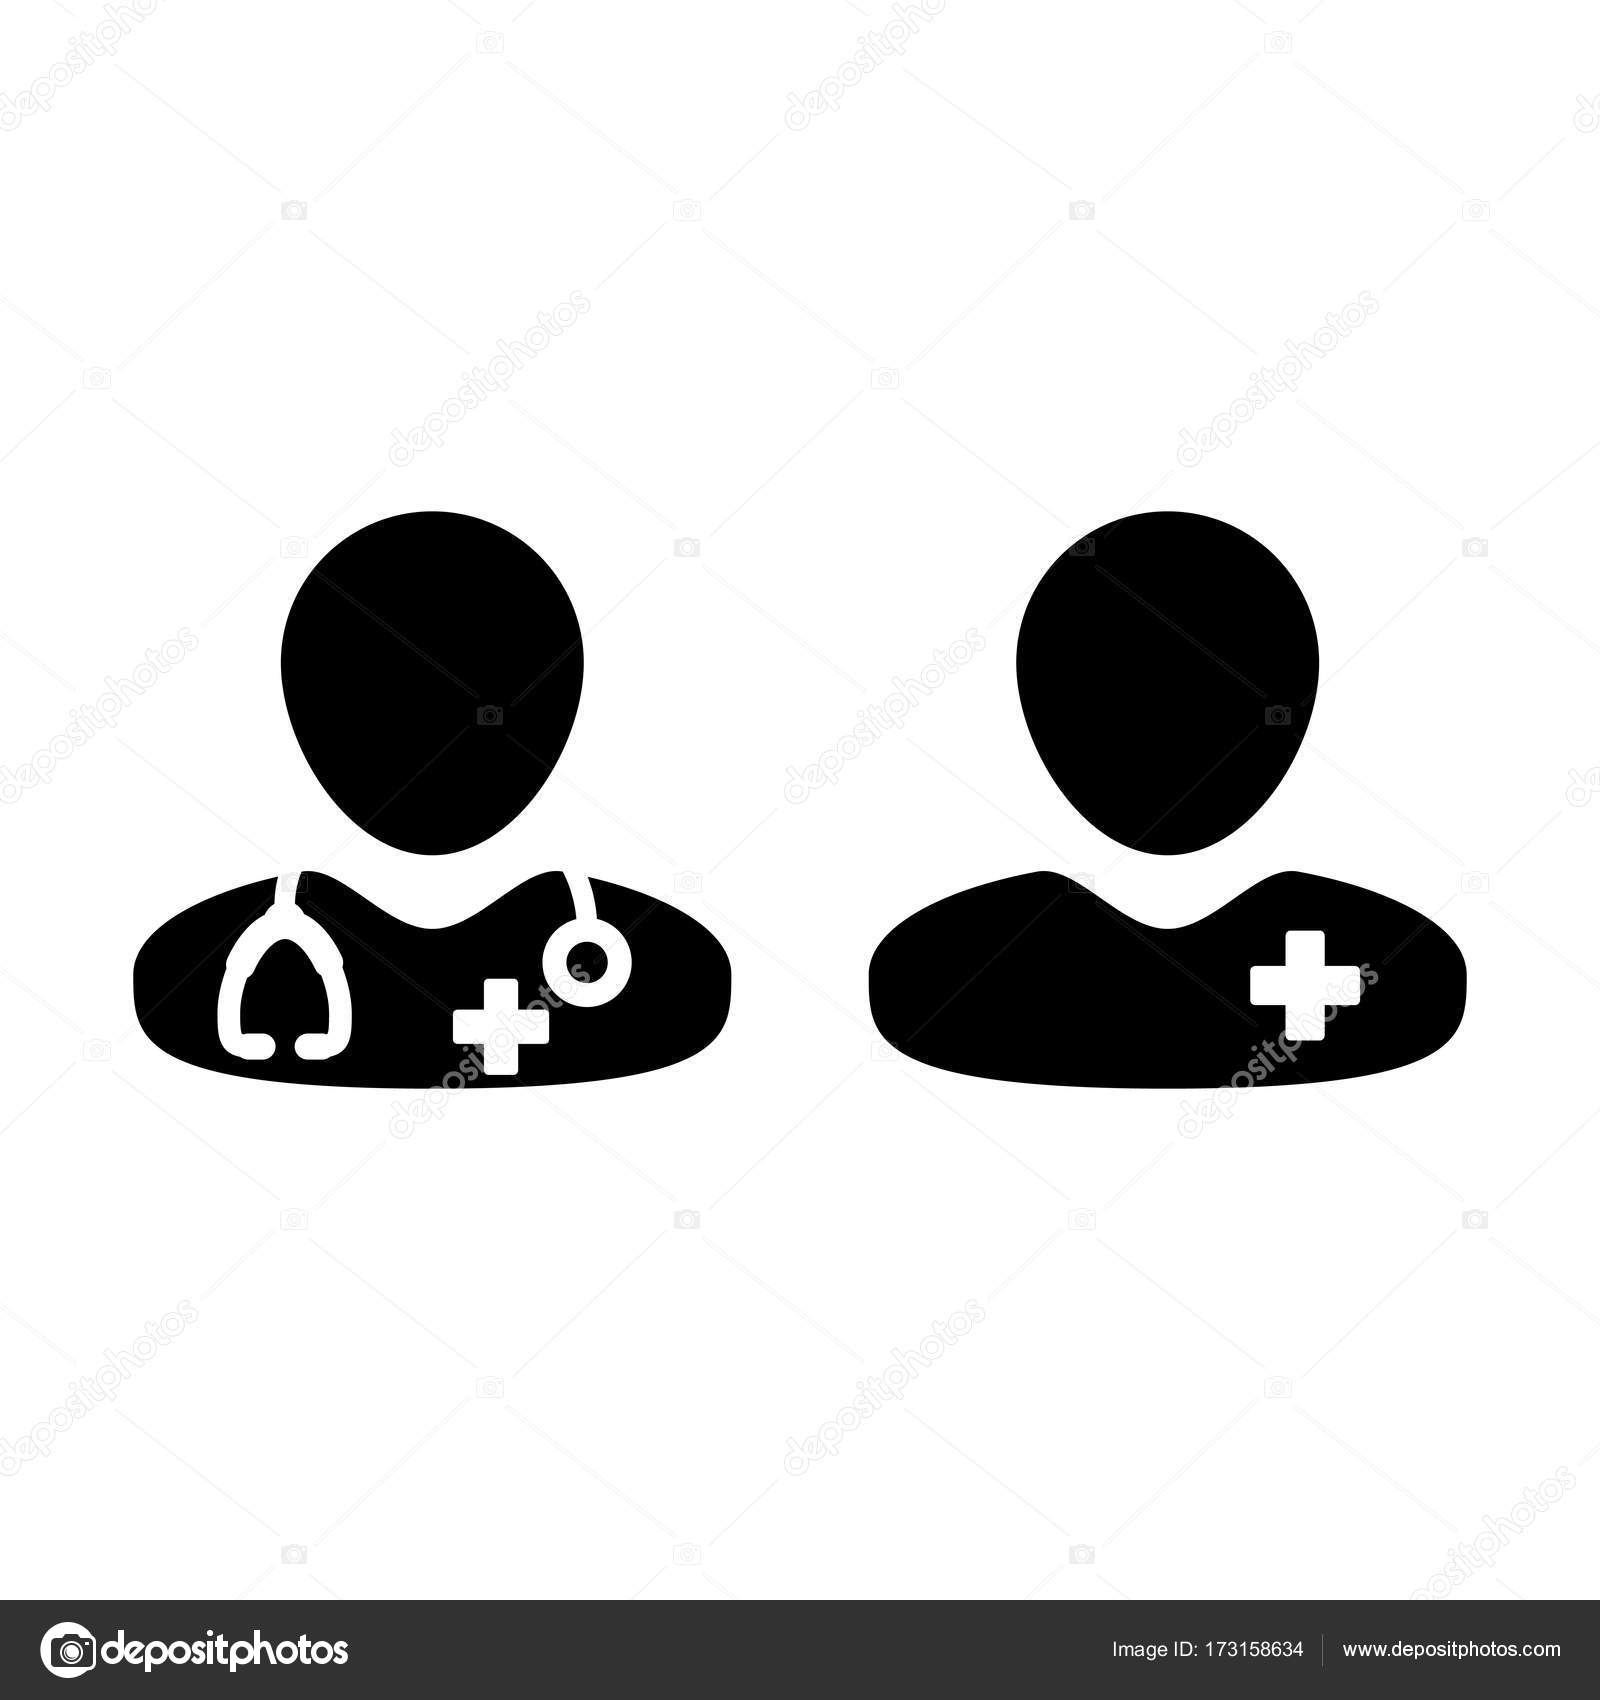 Doctor icon vector patient medical consultation and assistant male doctor icon with male patient medical consultation and assistant avatar in symbol glyph pictogram illustration vector by tuktukdesign buycottarizona Images